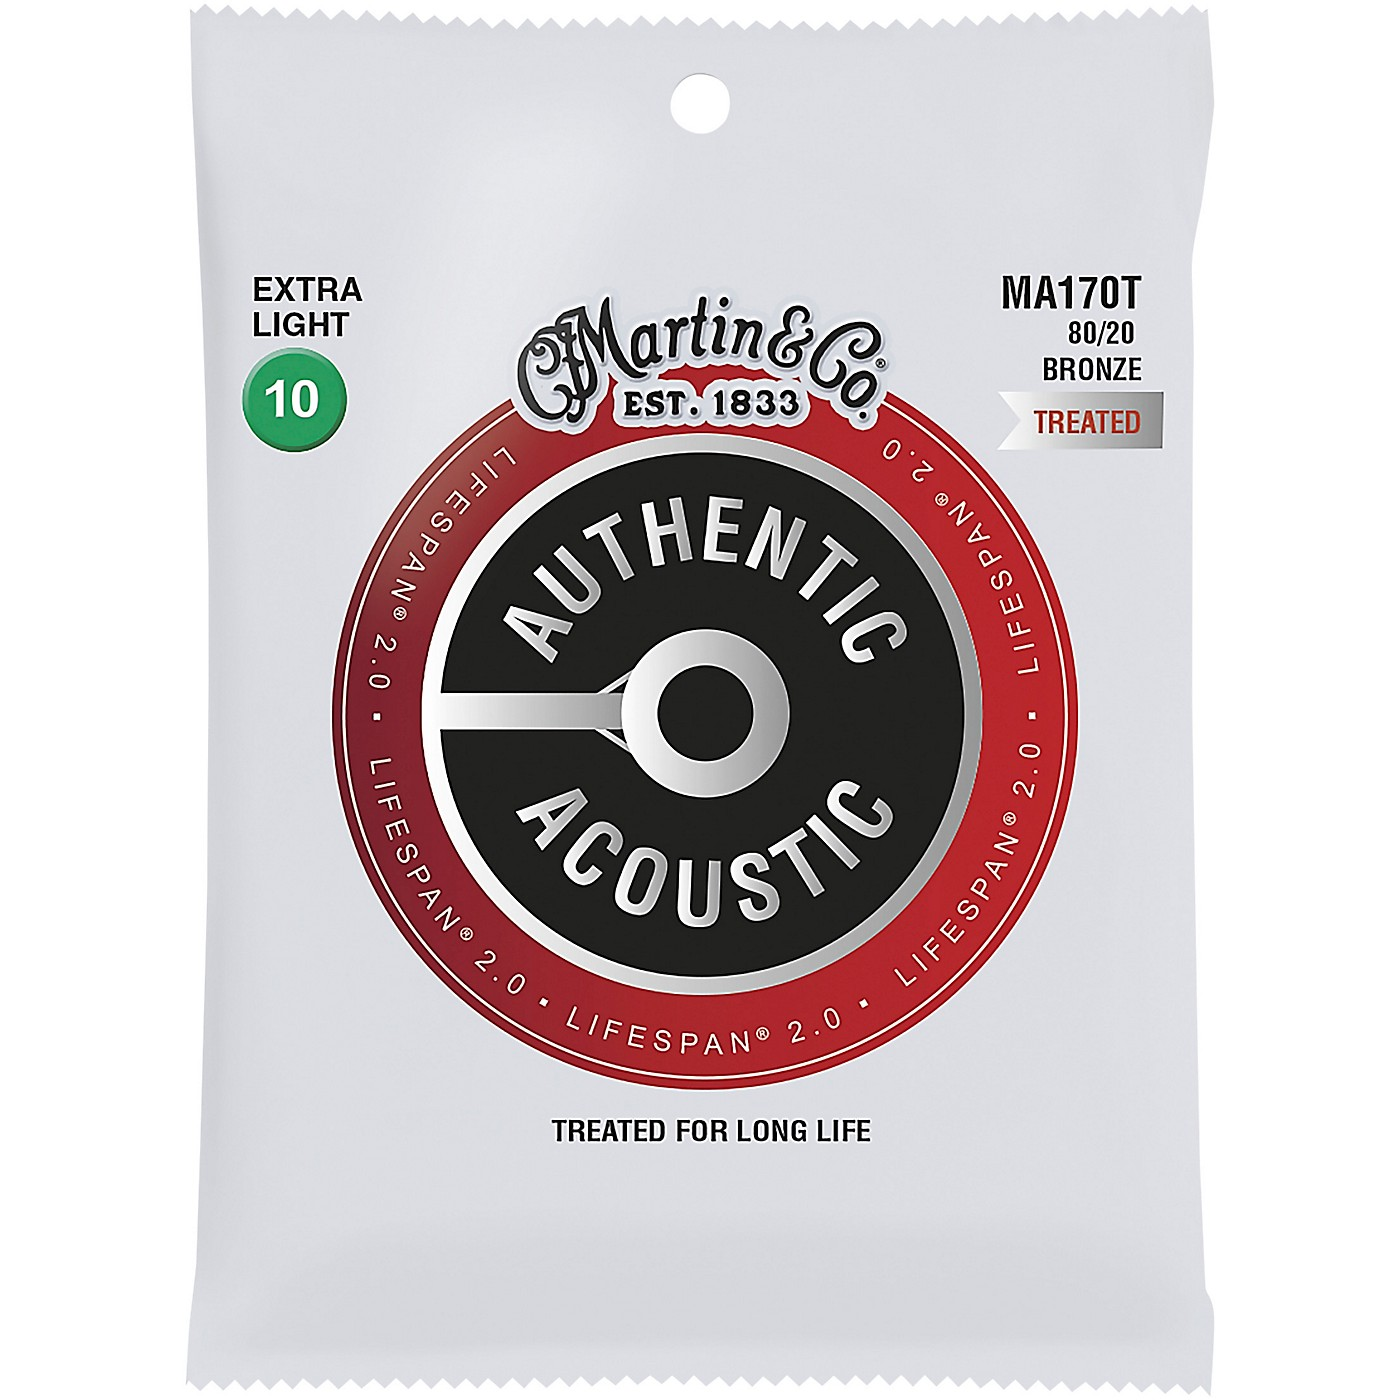 Martin MA170T Lifespan 2.0 80/20 Bronze Extra-Light Authentic Acoustic Guitar Strings thumbnail